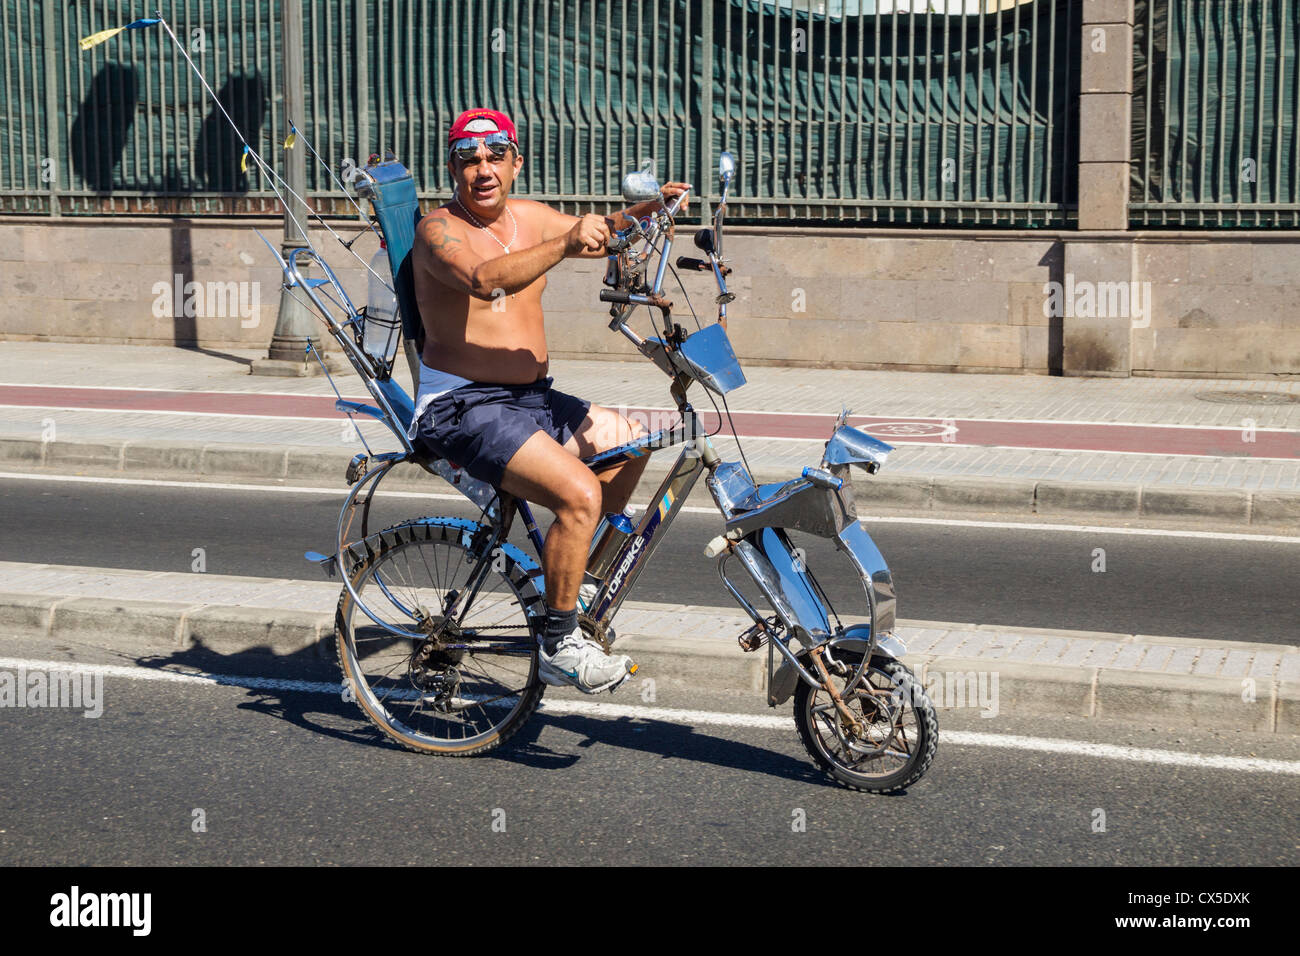 Man riding custom built bicycle in Spain - Stock Image